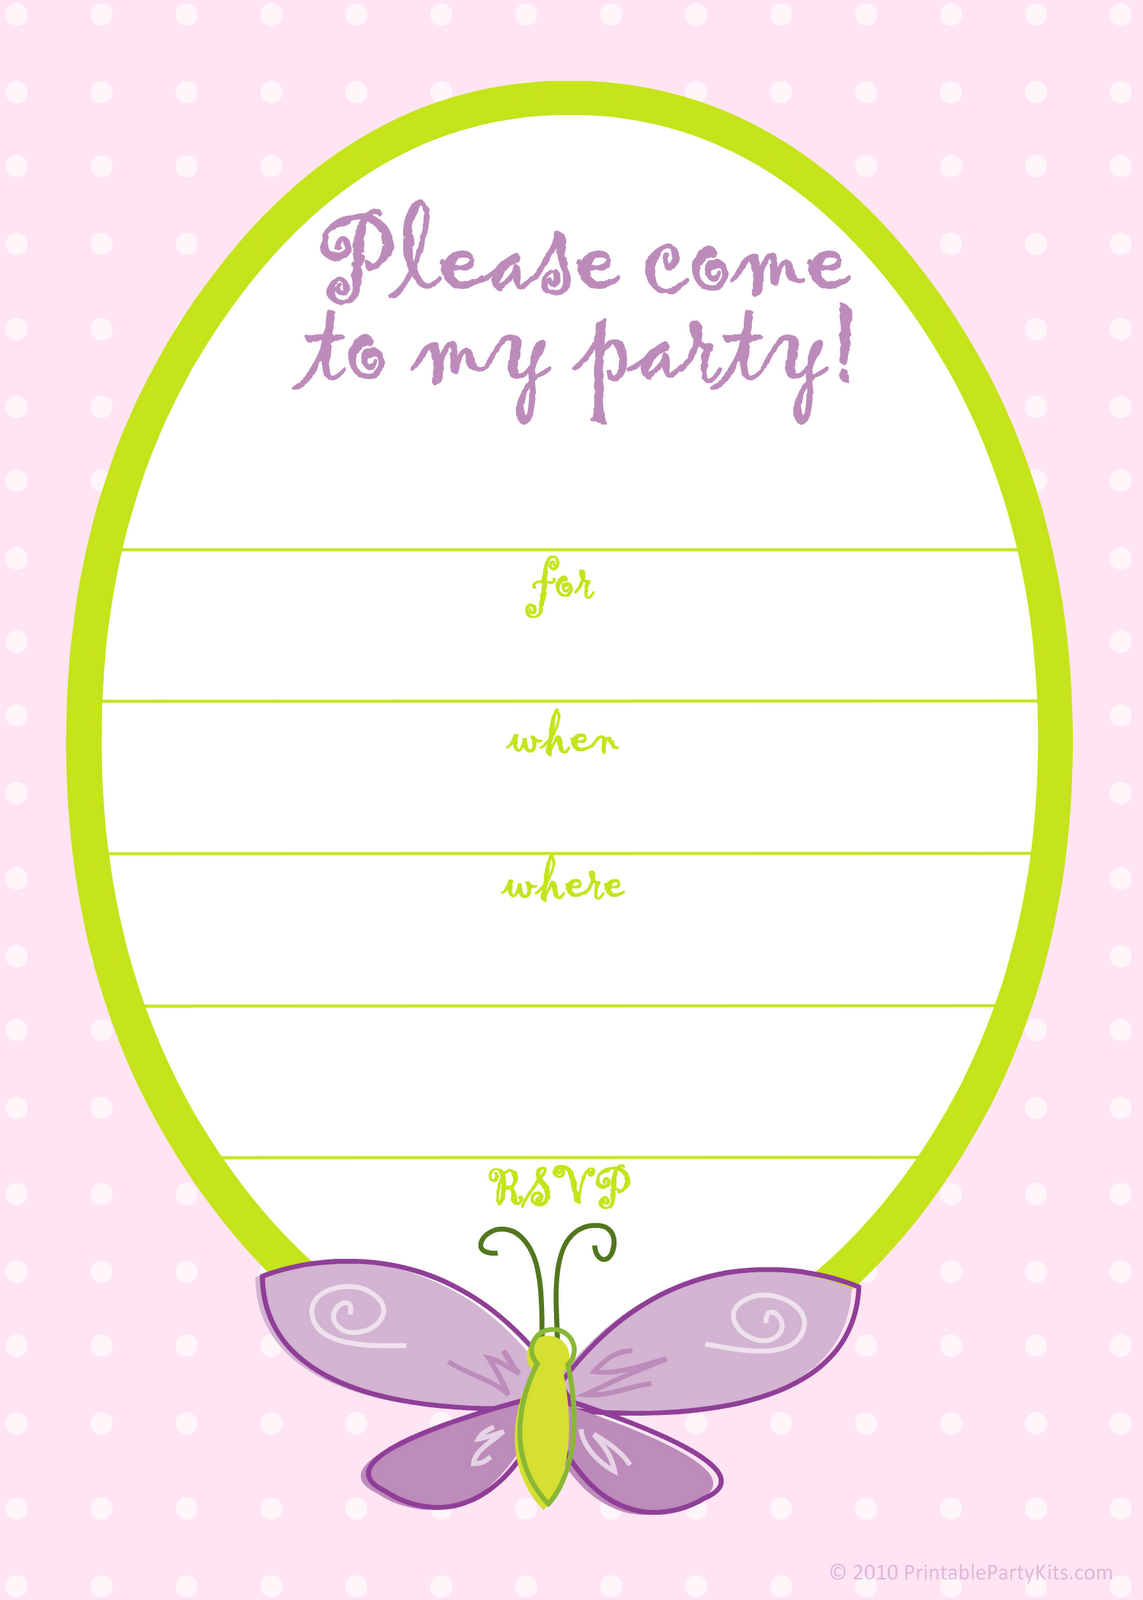 invitation images – Birthday Invite Template